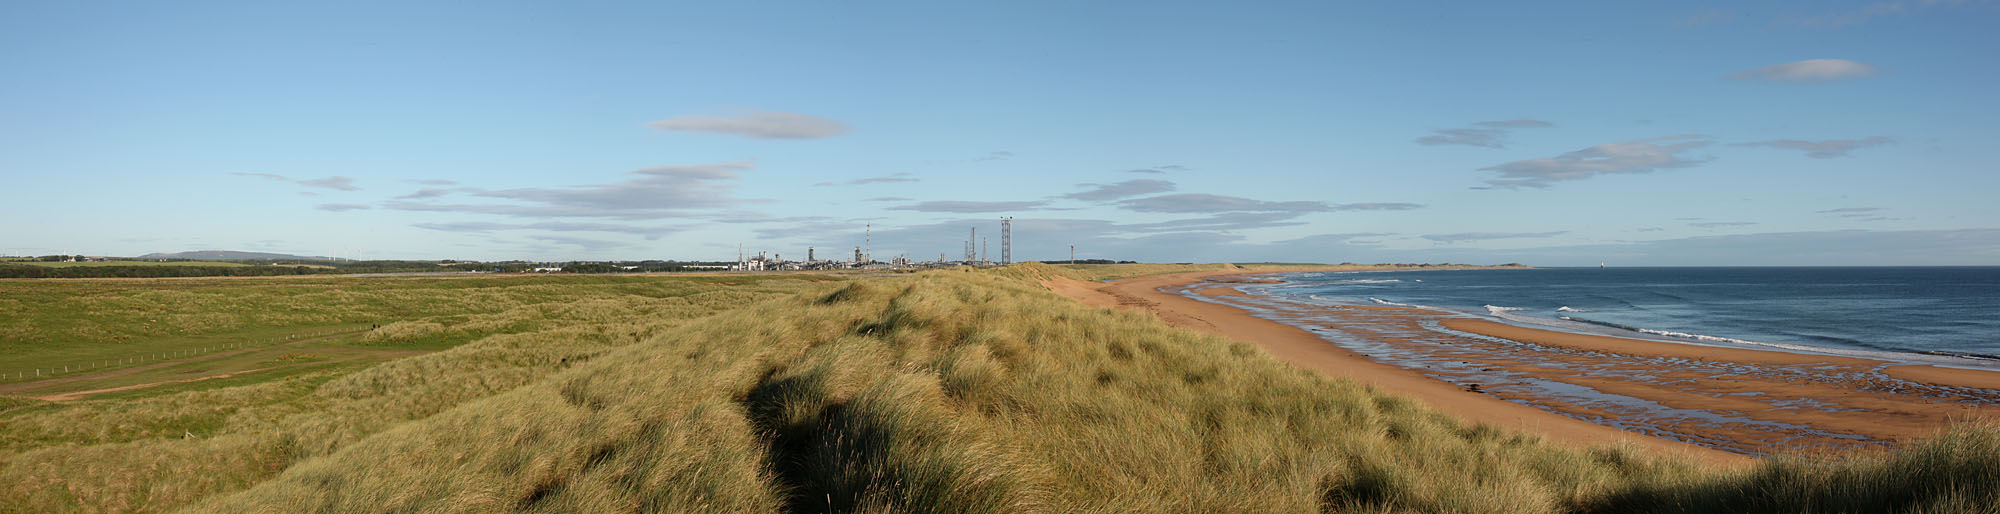 St Fergus Gas Terminal In the distance